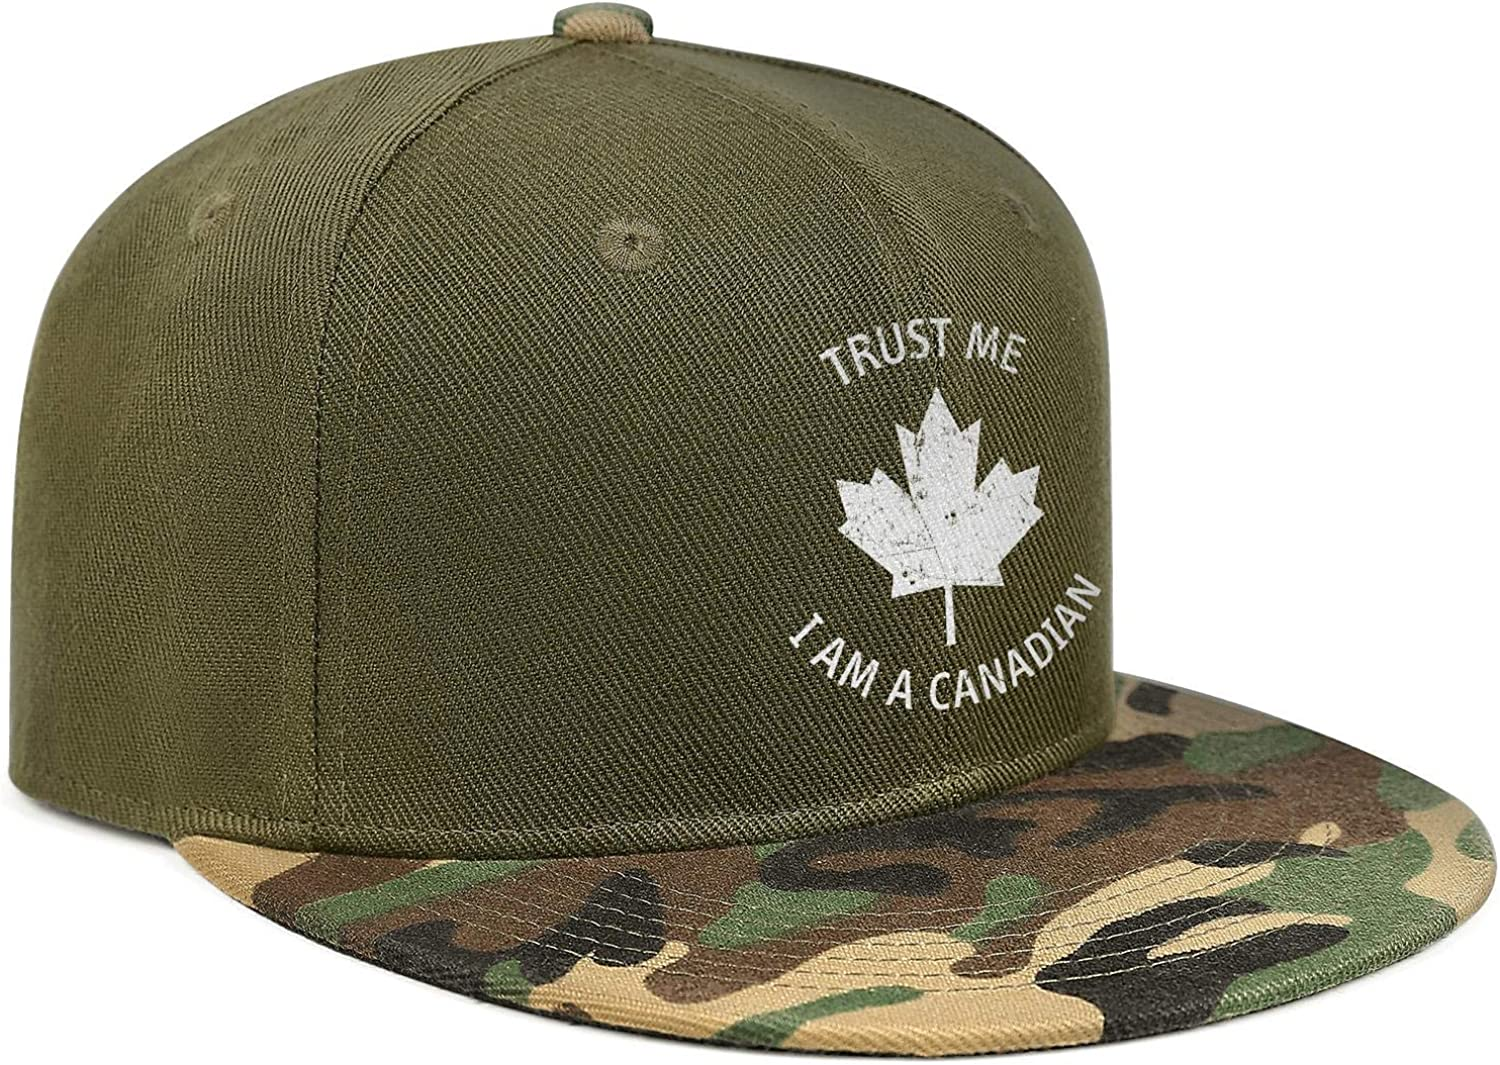 Canada Day Trust Me I Am a Canadian Unisex Baseball Cap Two-Tone Stretch Sport Hats Adjustable Trucker Caps Dad-Hat